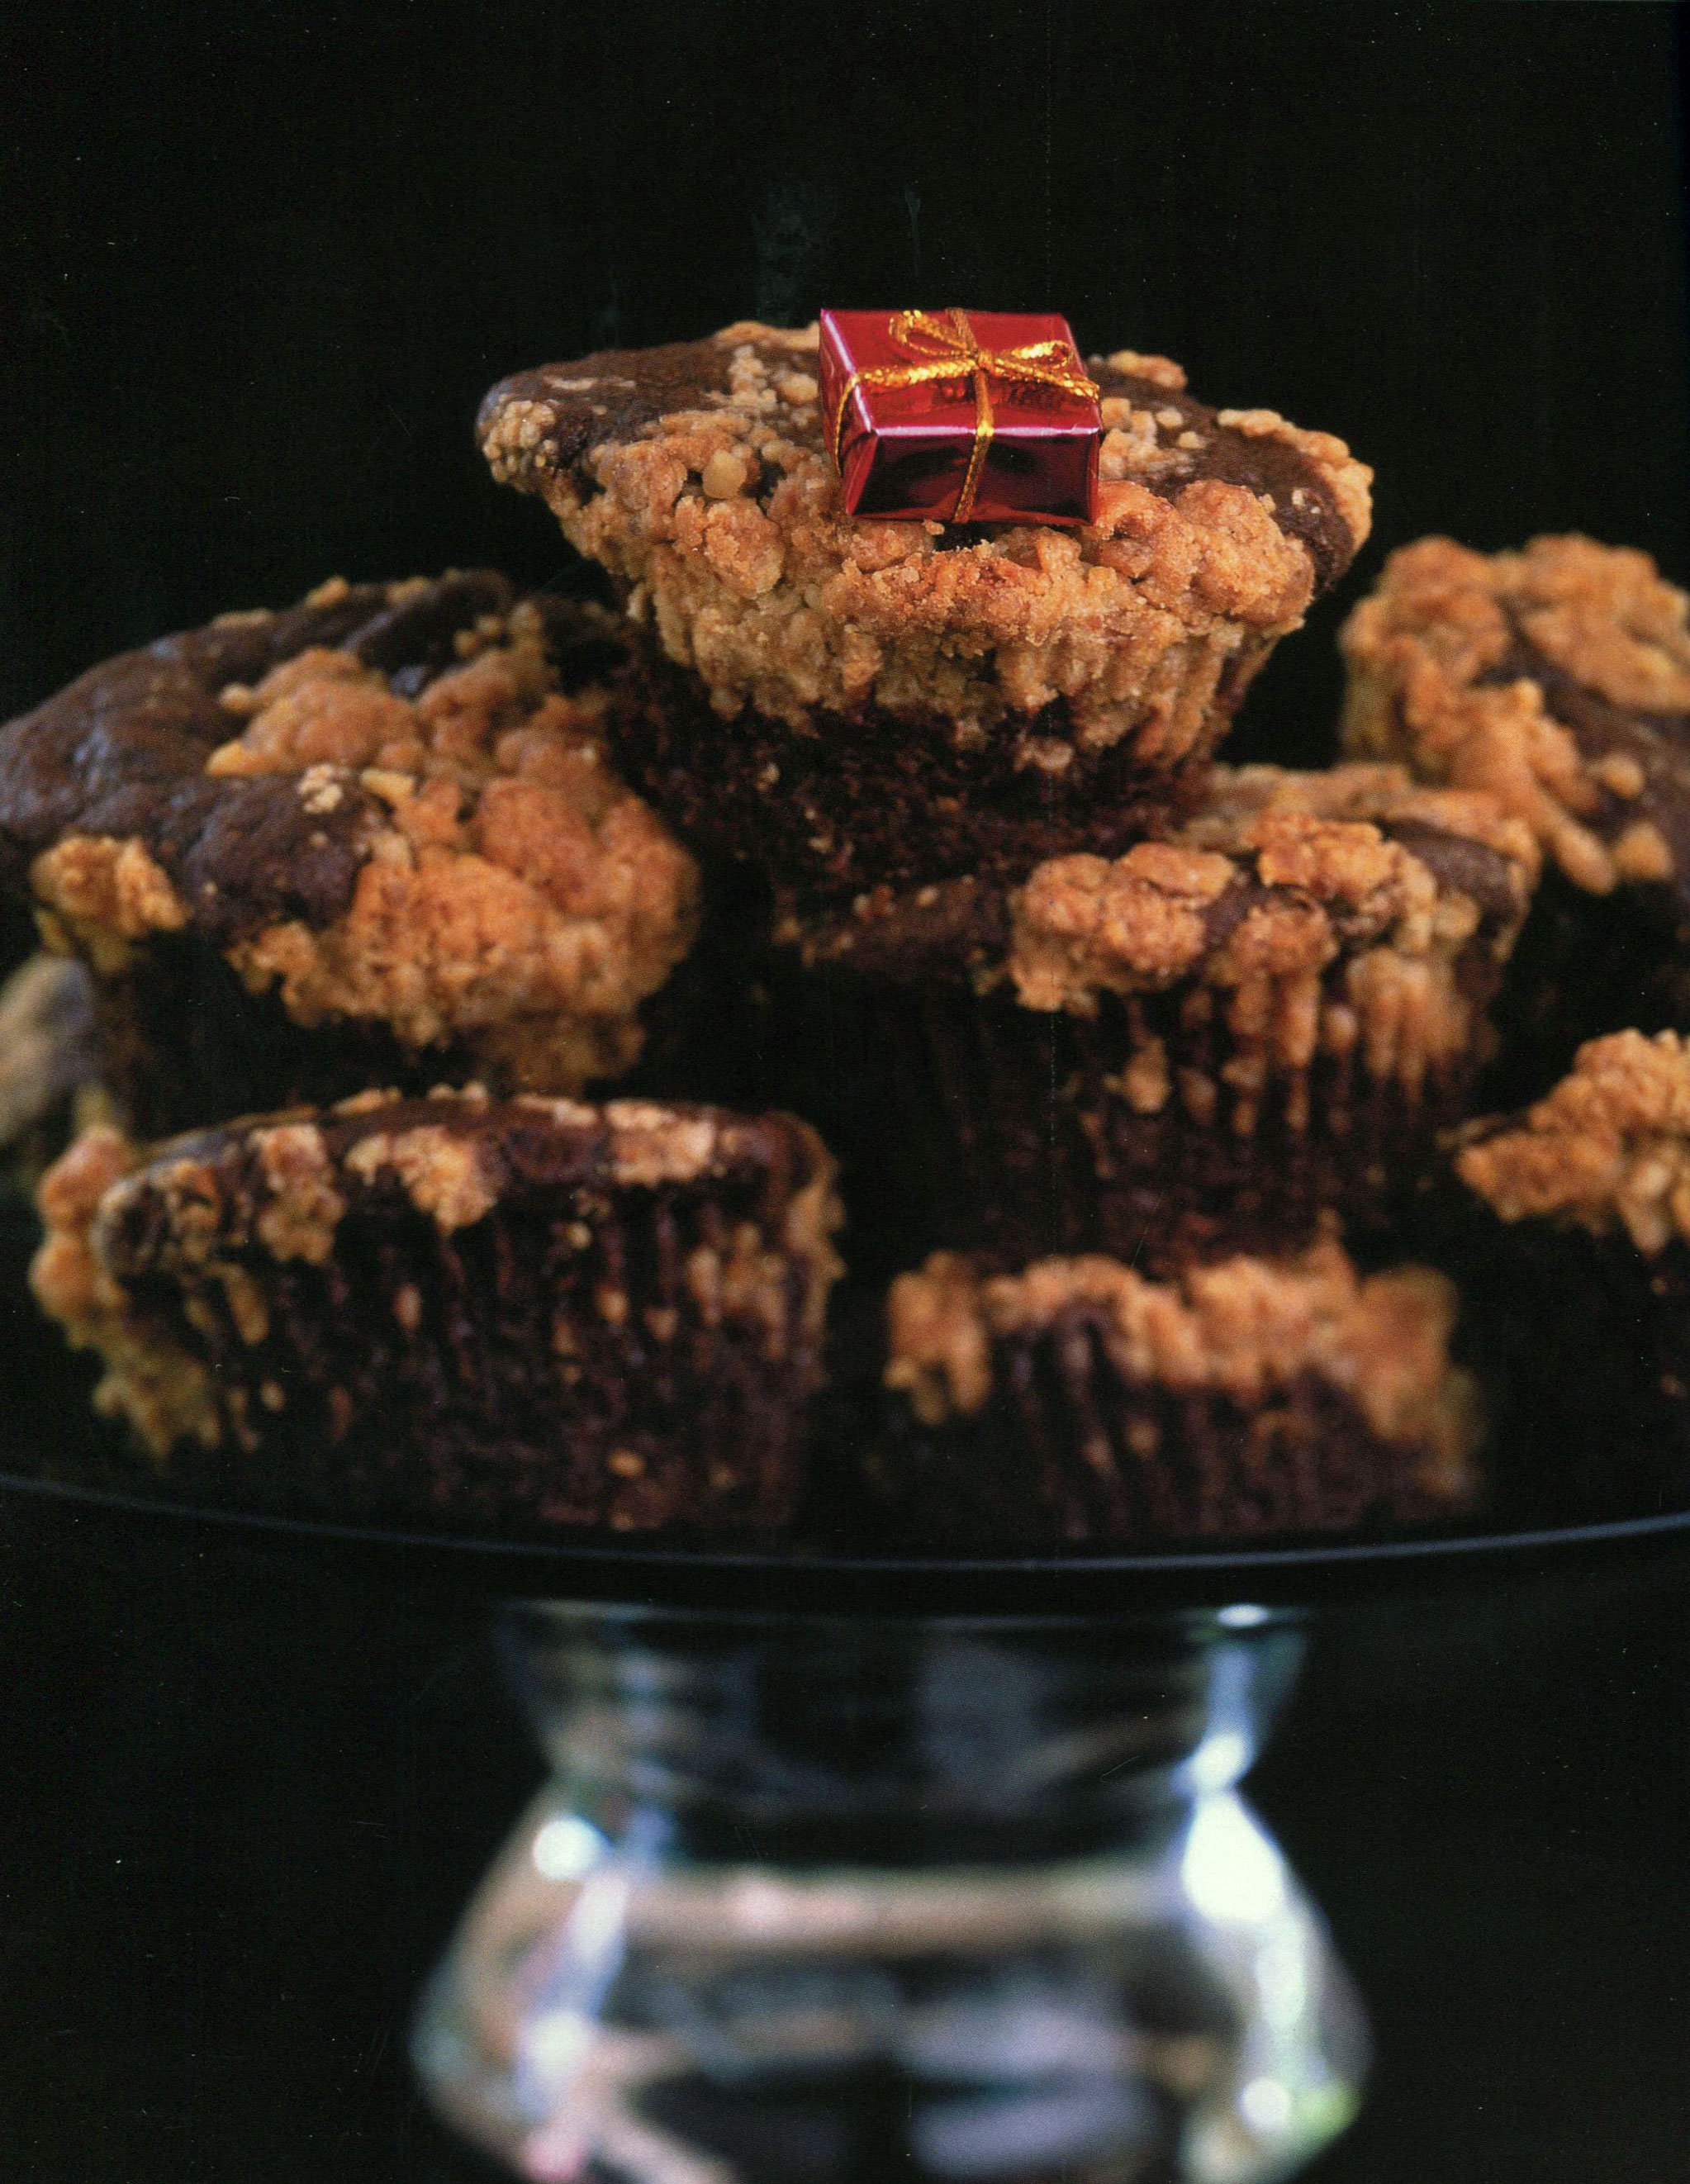 TBT Recipe: Christmas Breakfast Chocolate Sour cream Crumb Cakes